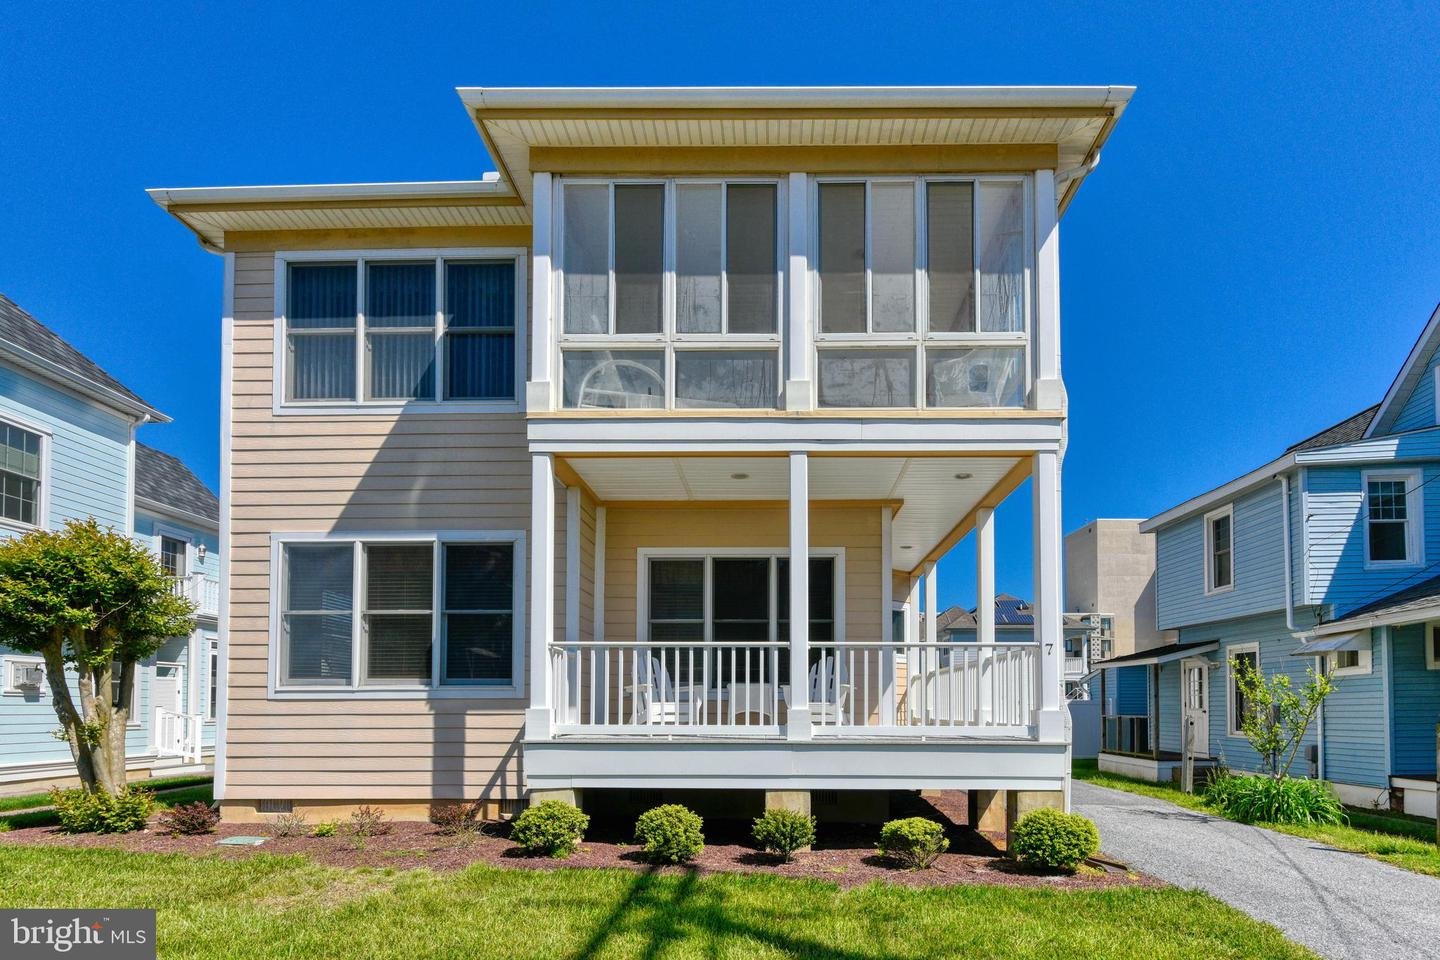 DESU140752-301729566236-2019-05-20-15-11-27 7 Olive Ave | Rehoboth Beach, DE Real Estate For Sale | MLS# Desu140752  - 1st Choice Properties